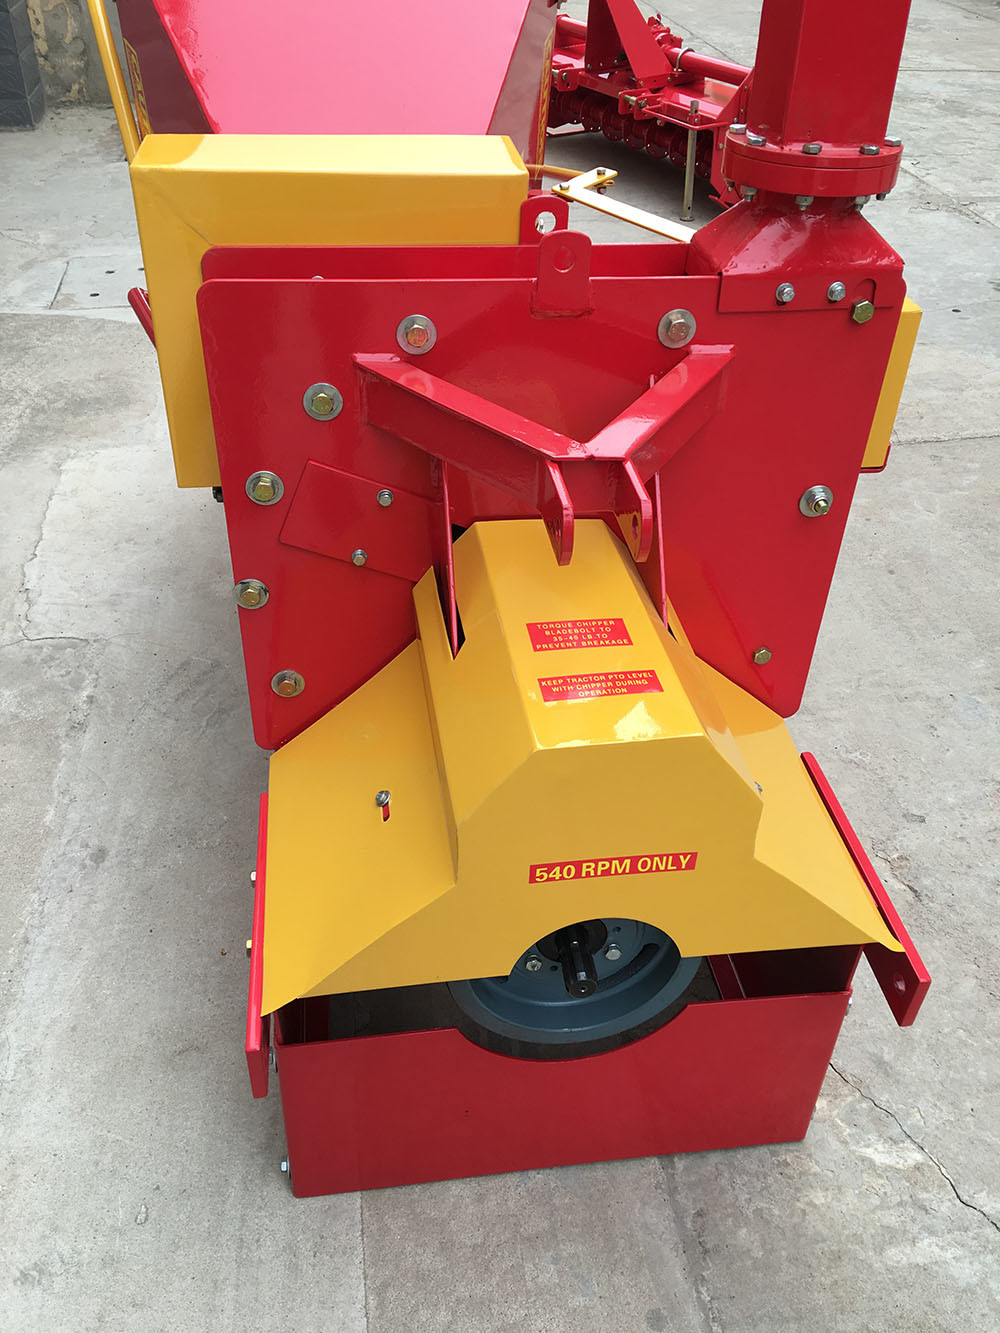 The Wood Chipper Shredder with Tractor Pto Shaft